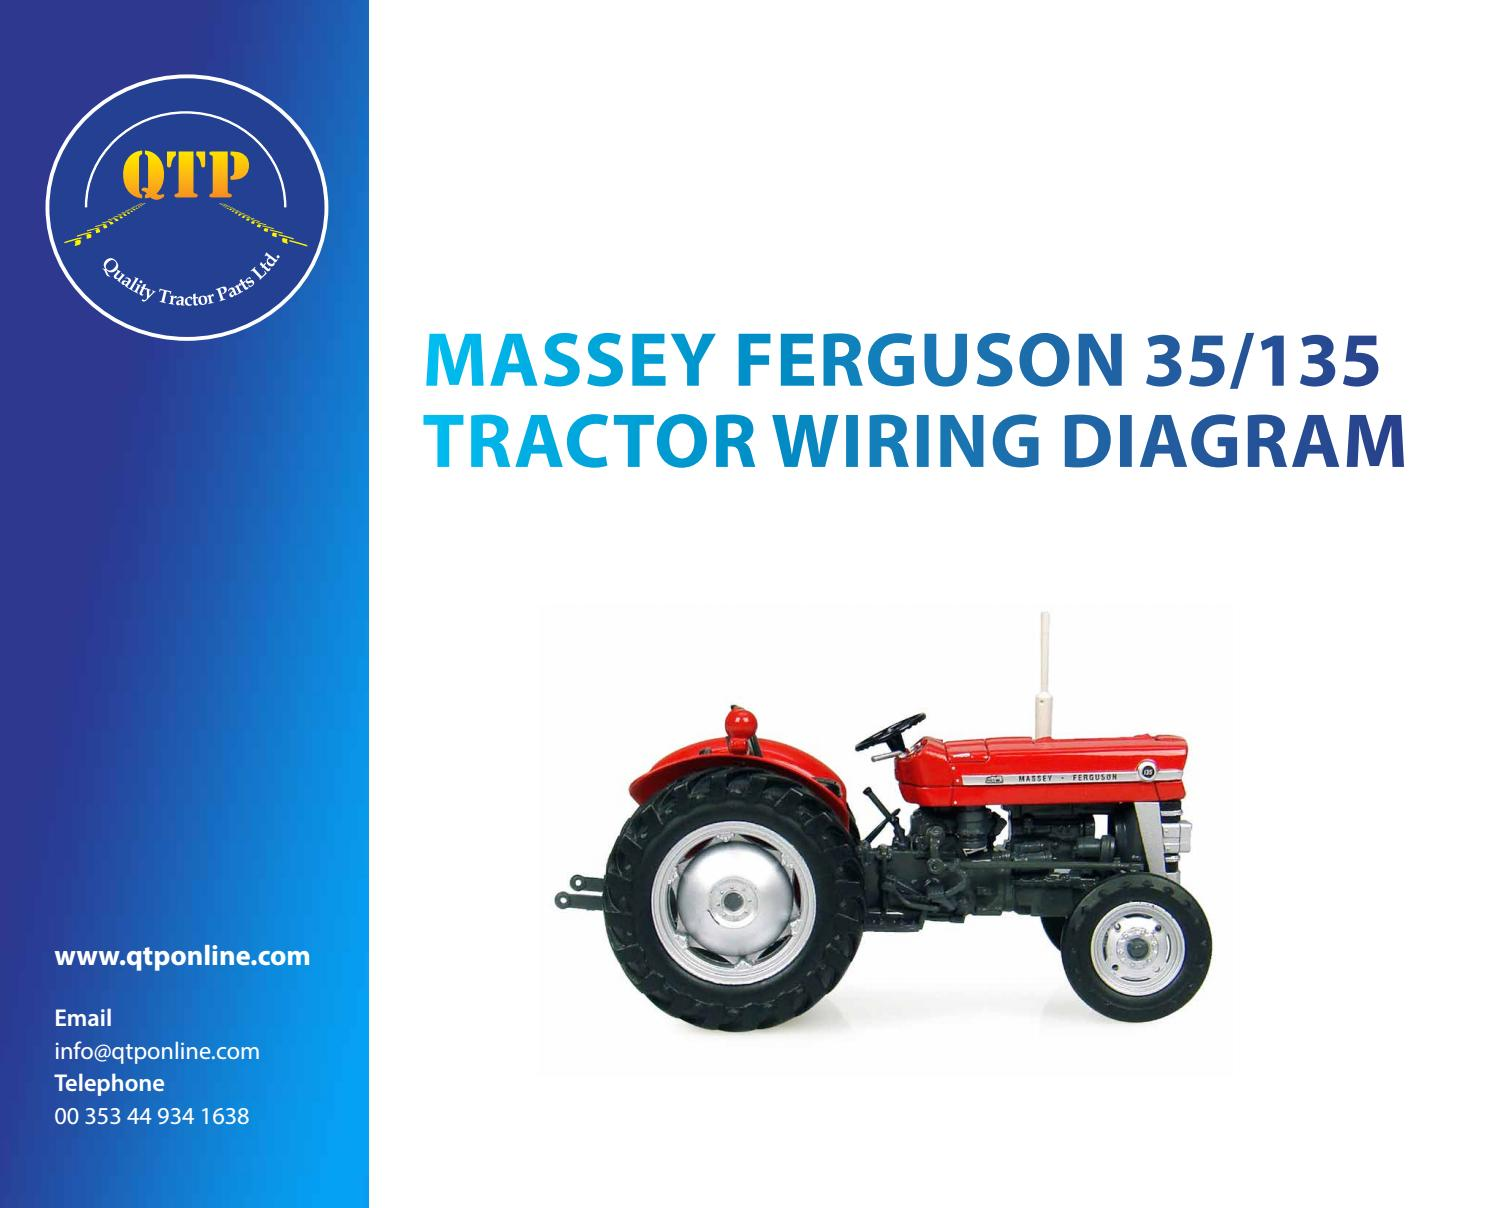 35 135 Wiring Diagram By Quality Tractor Parts Issuu Resources